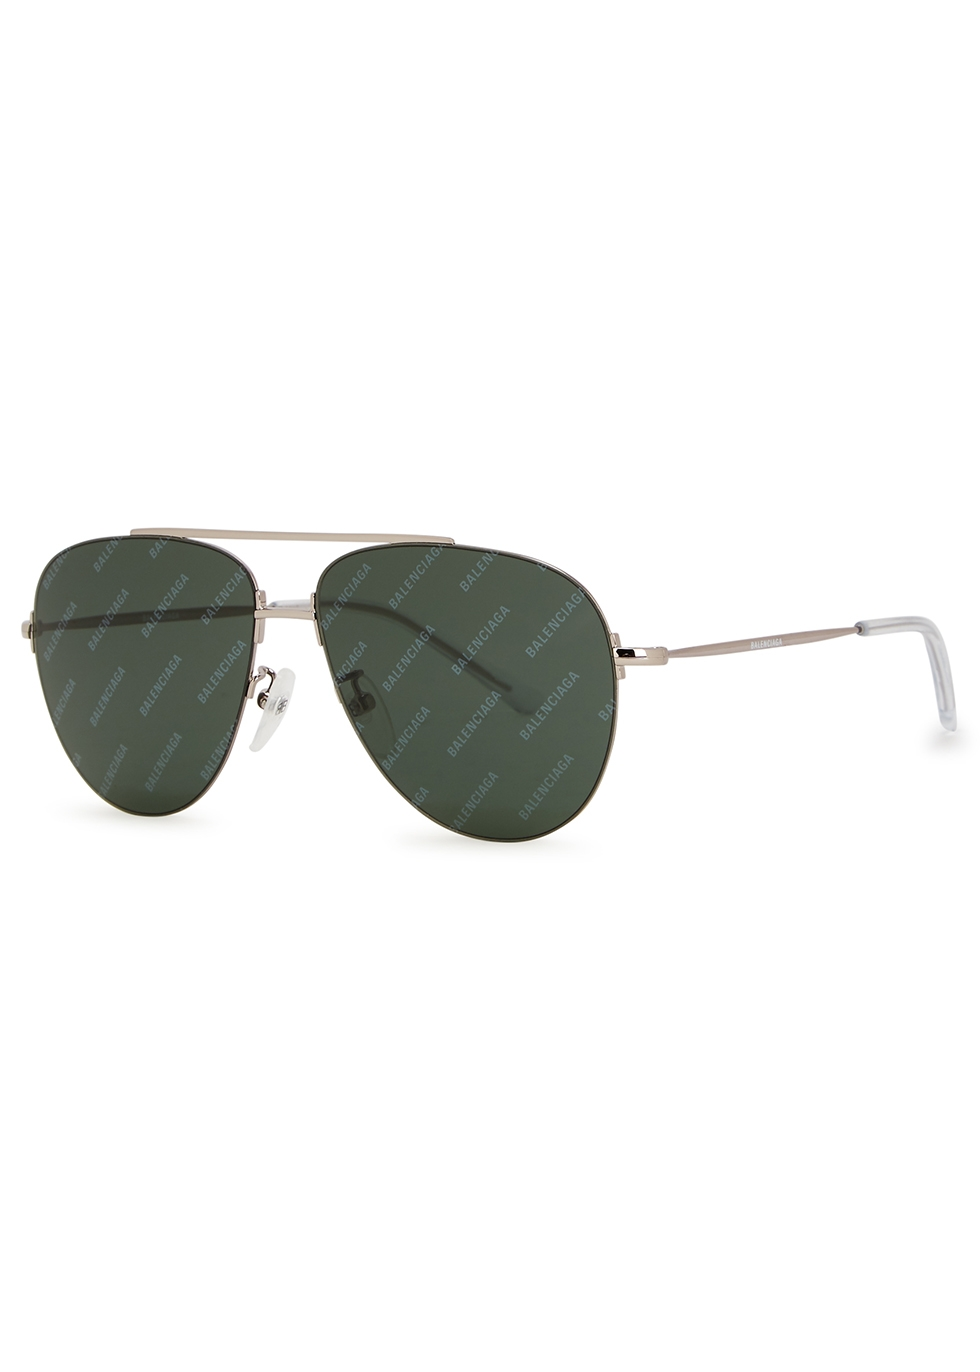 7aefedf09e945 Men s Designer Sunglasses   Eyewear - Harvey Nichols